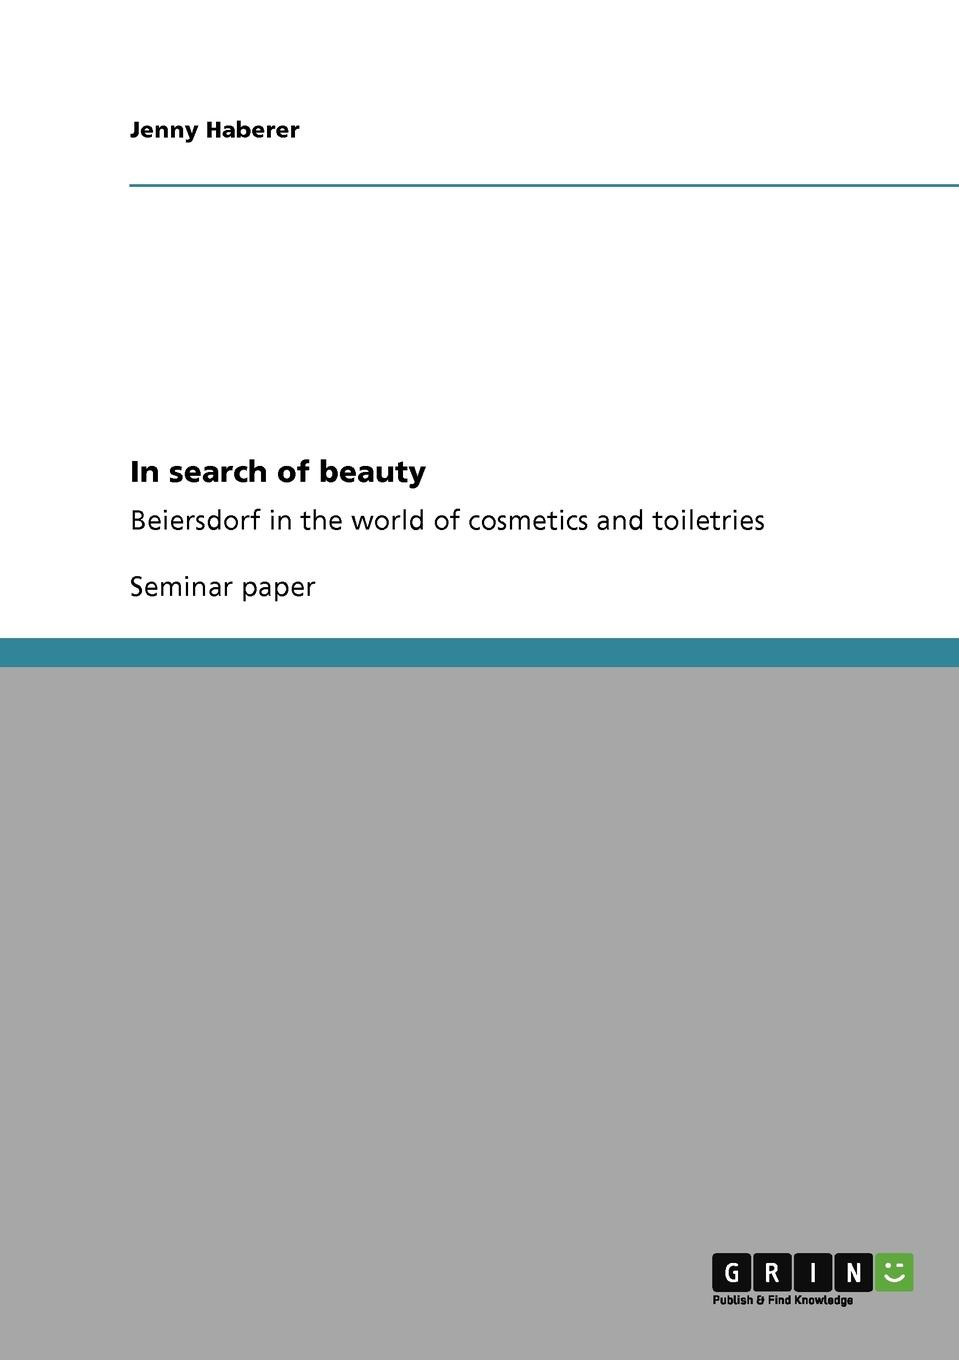 Jenny Haberer In search of beauty charles edmond akers the rubber industry in brazil and the orient